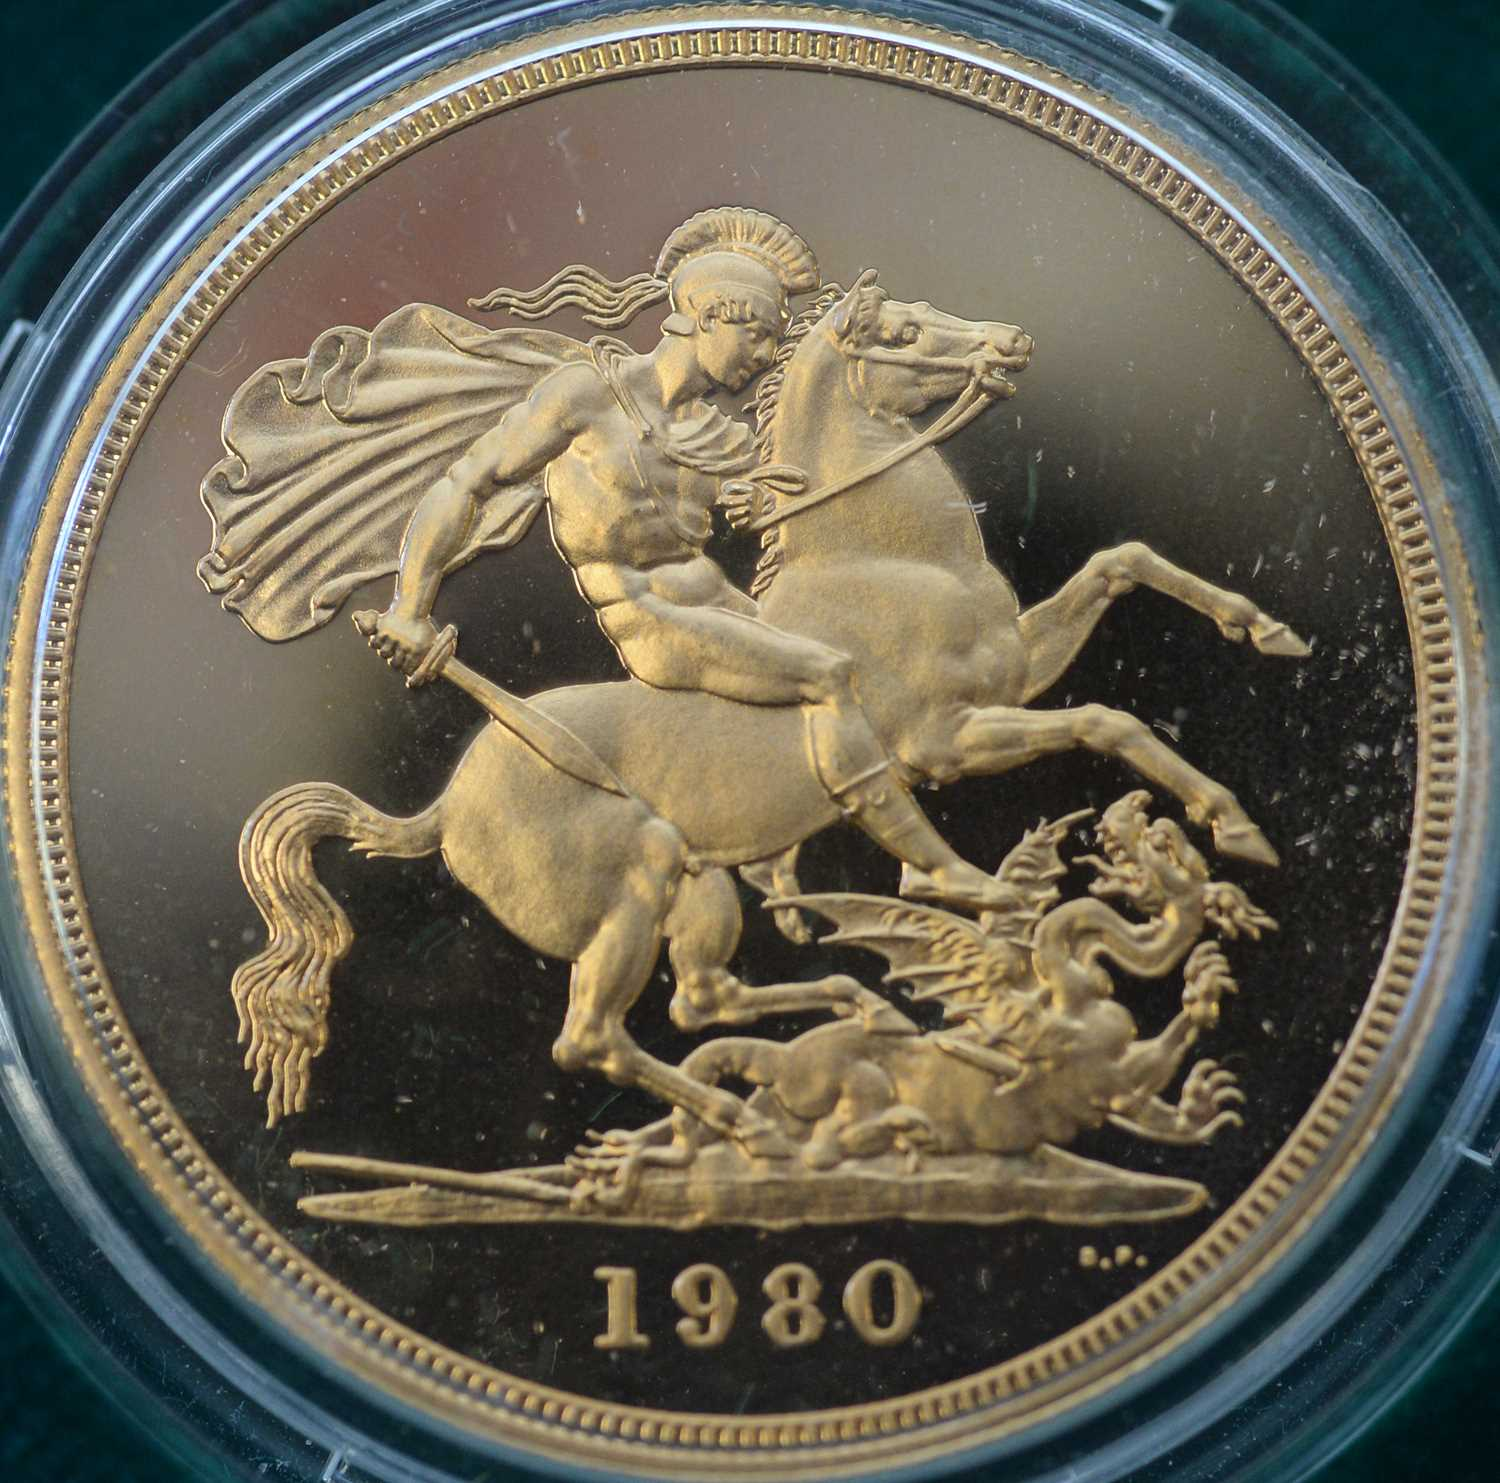 1980 four coin gold proof sovereign set - Image 3 of 8